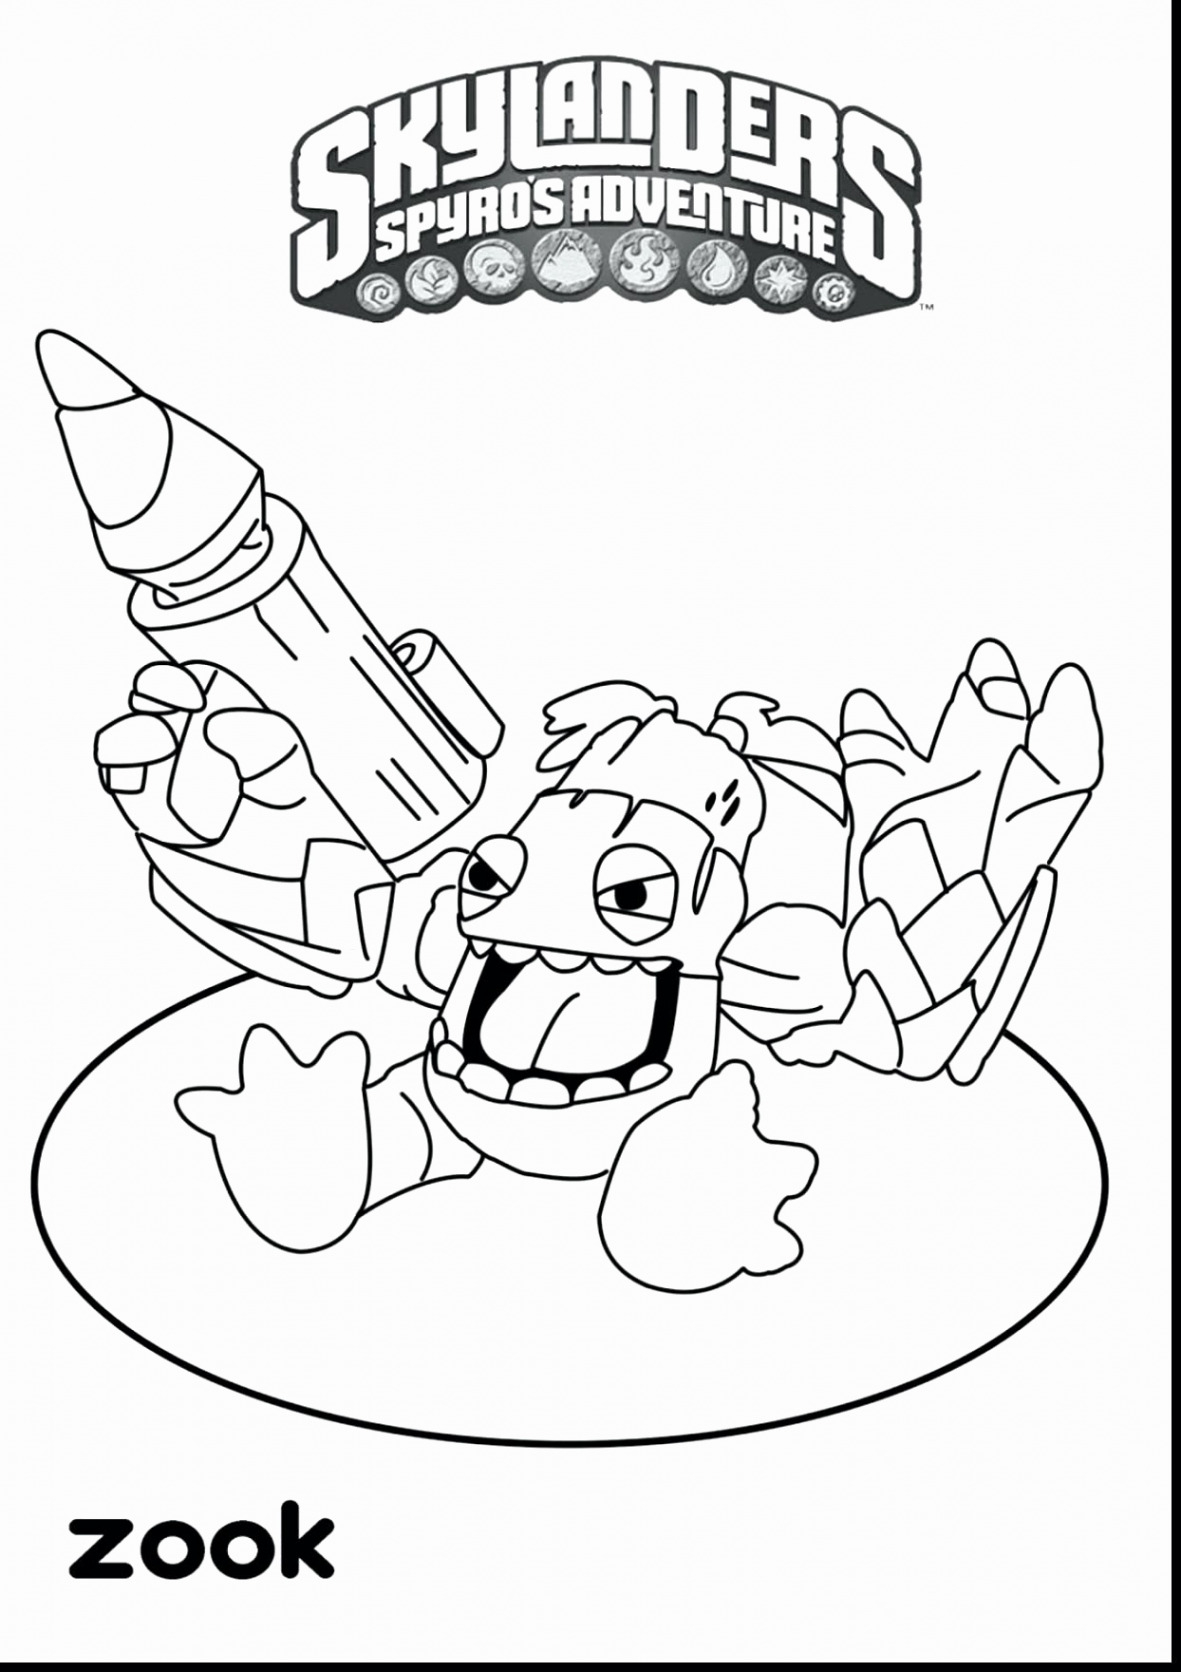 child coloring pages online Download-Hospital Coloring Pages Printables Printable Christmas Coloring Pages for Kids Awesome Free Christmas Coloring Pages 8-f